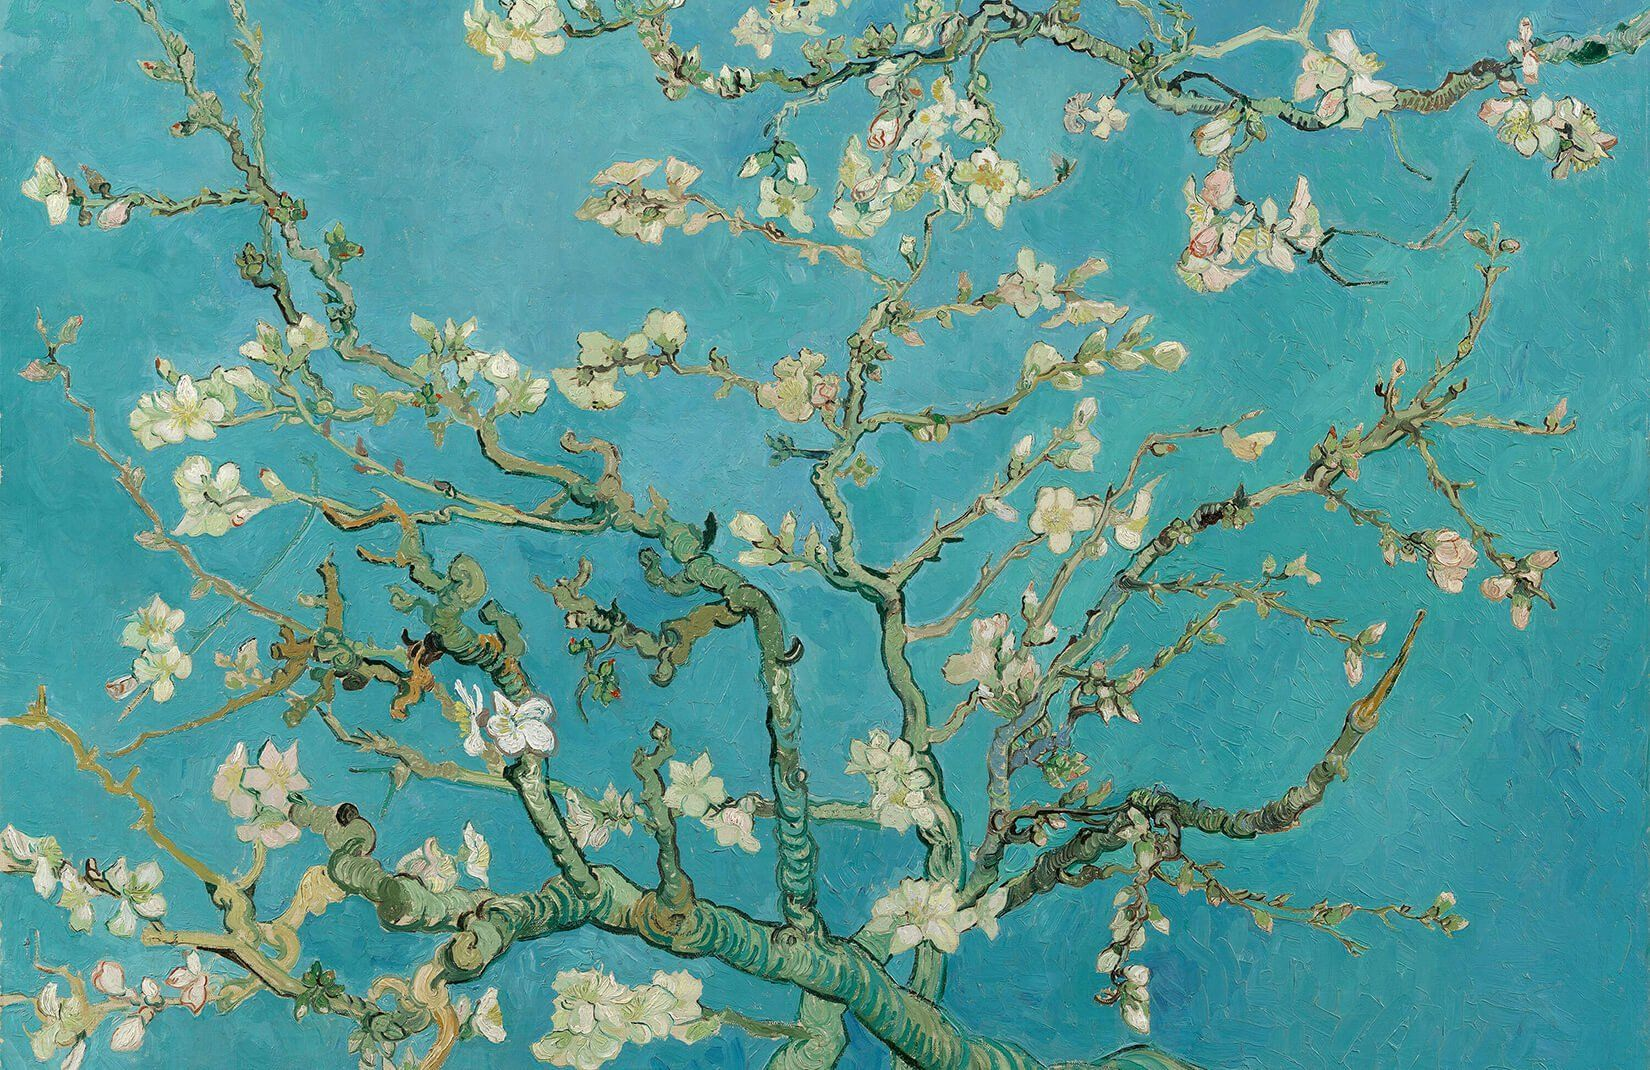 VanGogh-AlmondBlossom